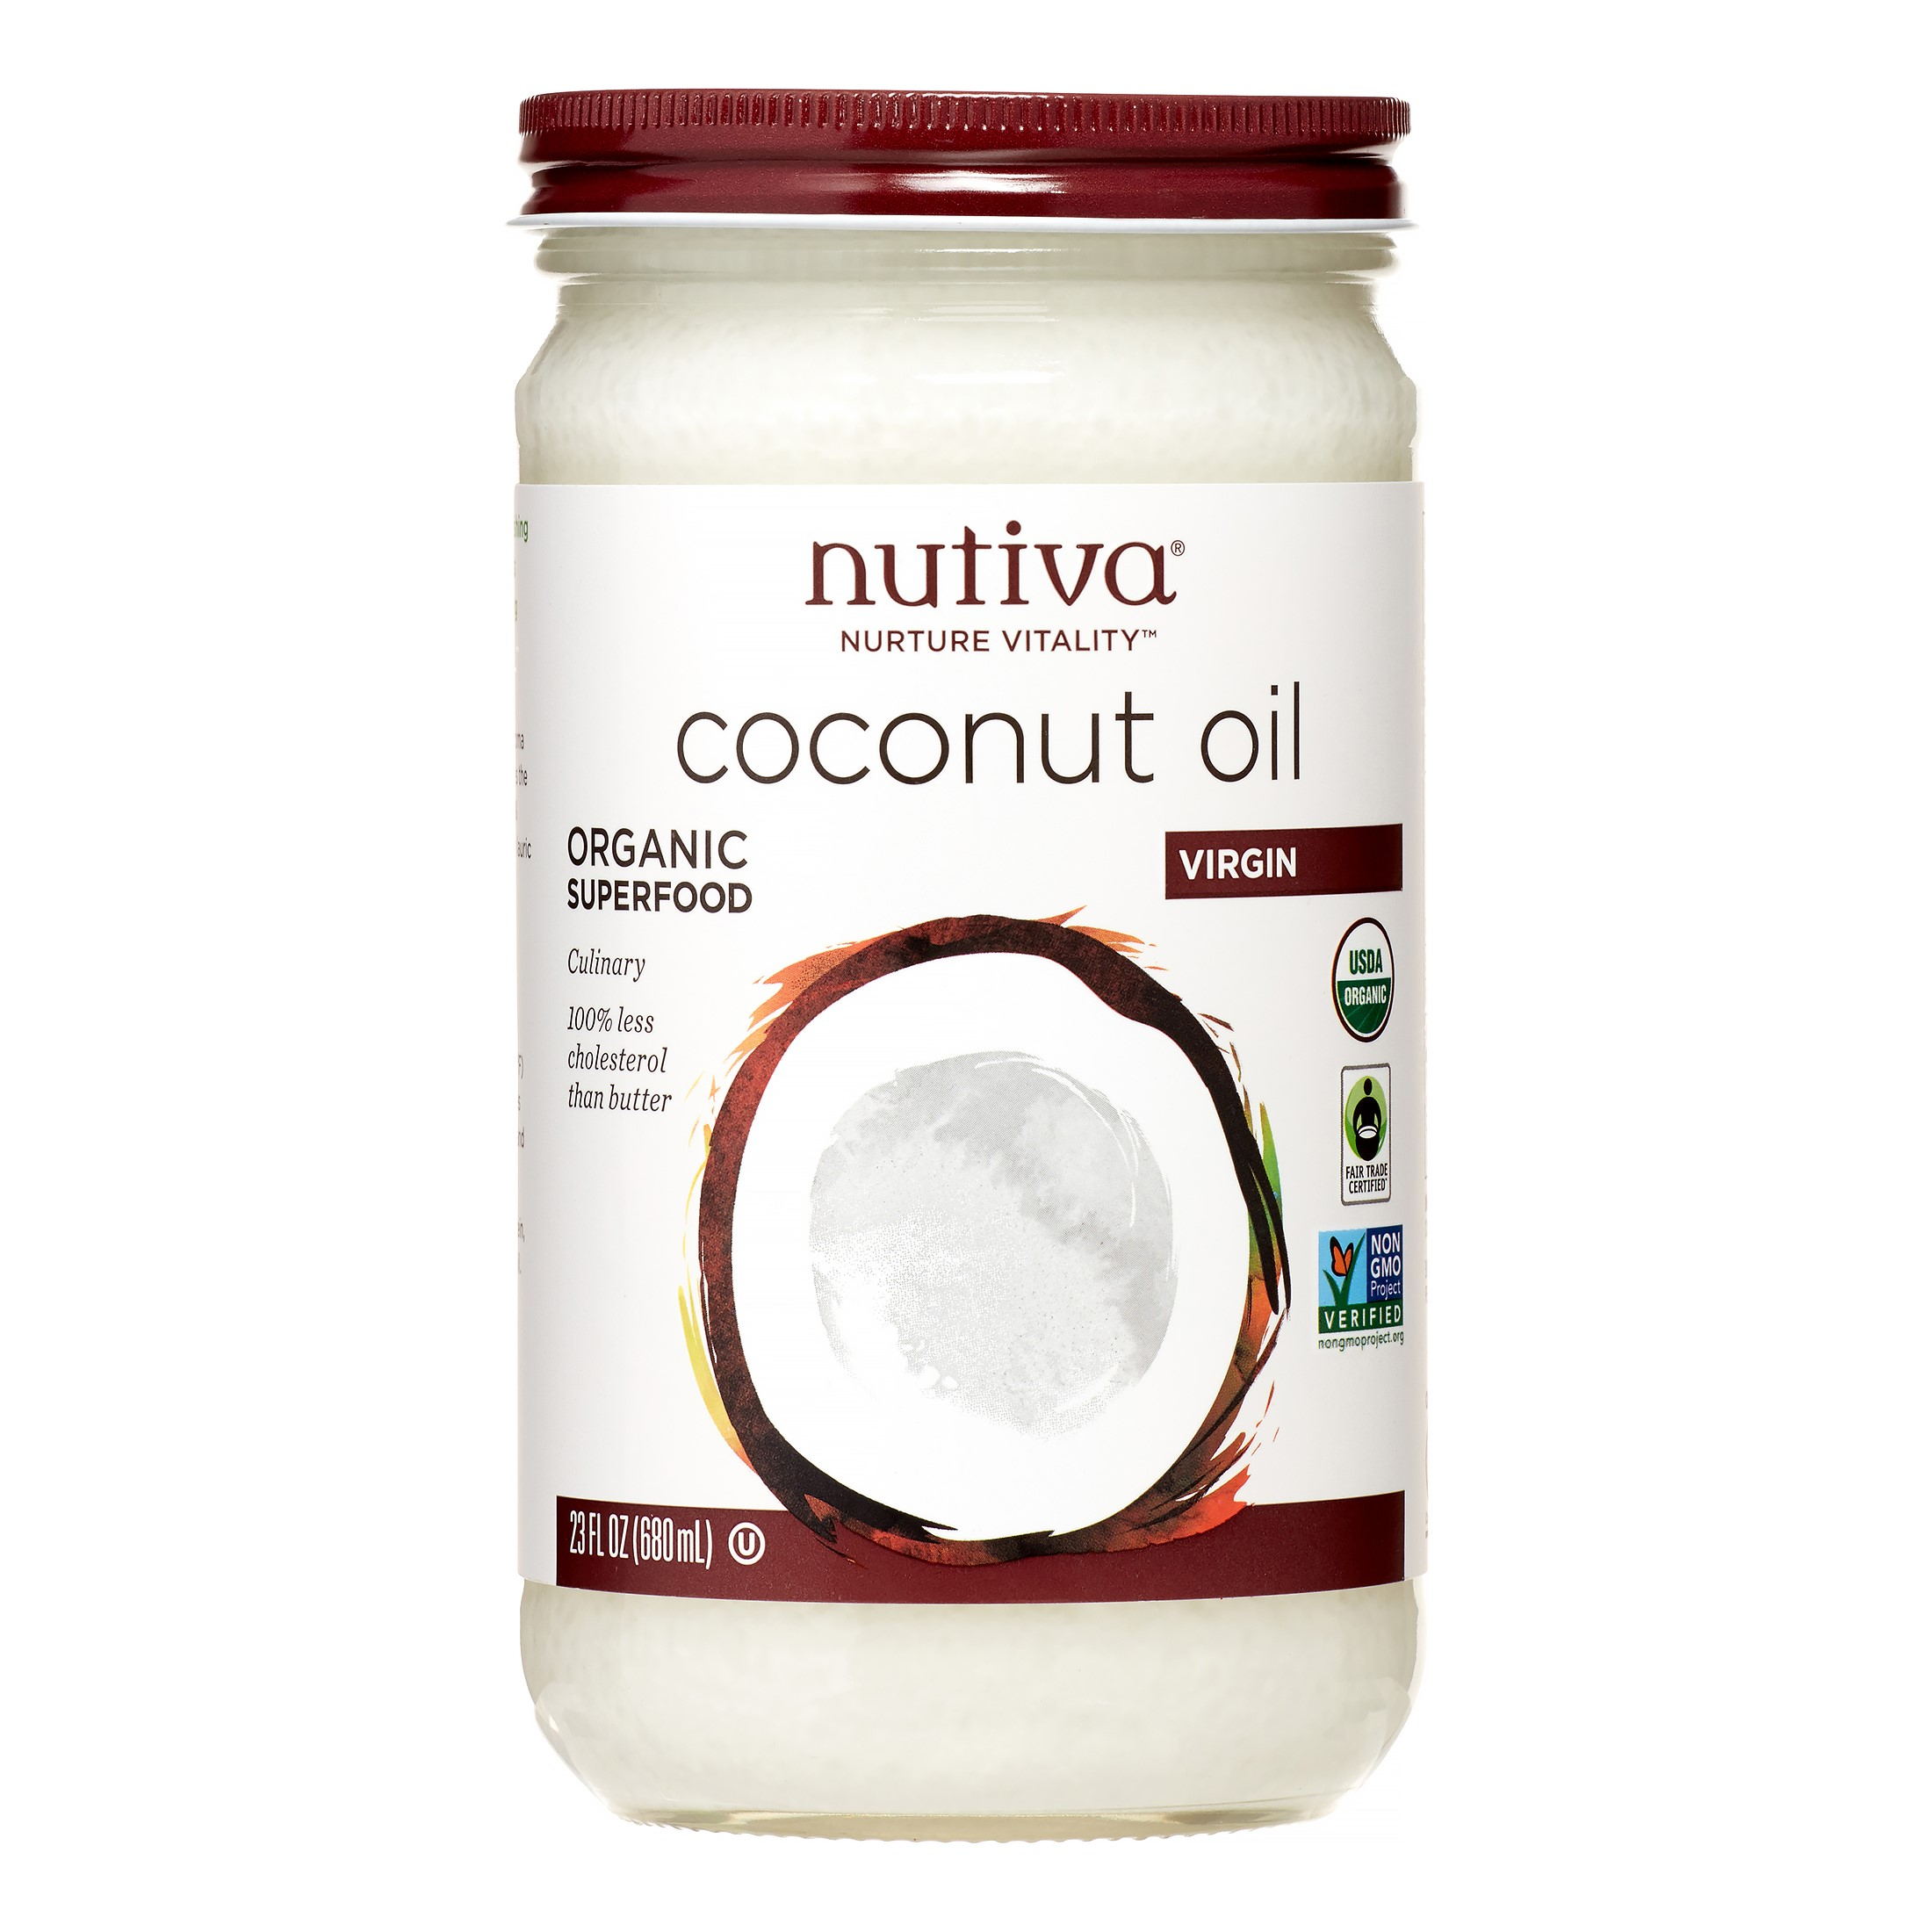 Nutiva Organic Virgin Coconut Oil, 23 Fl Oz